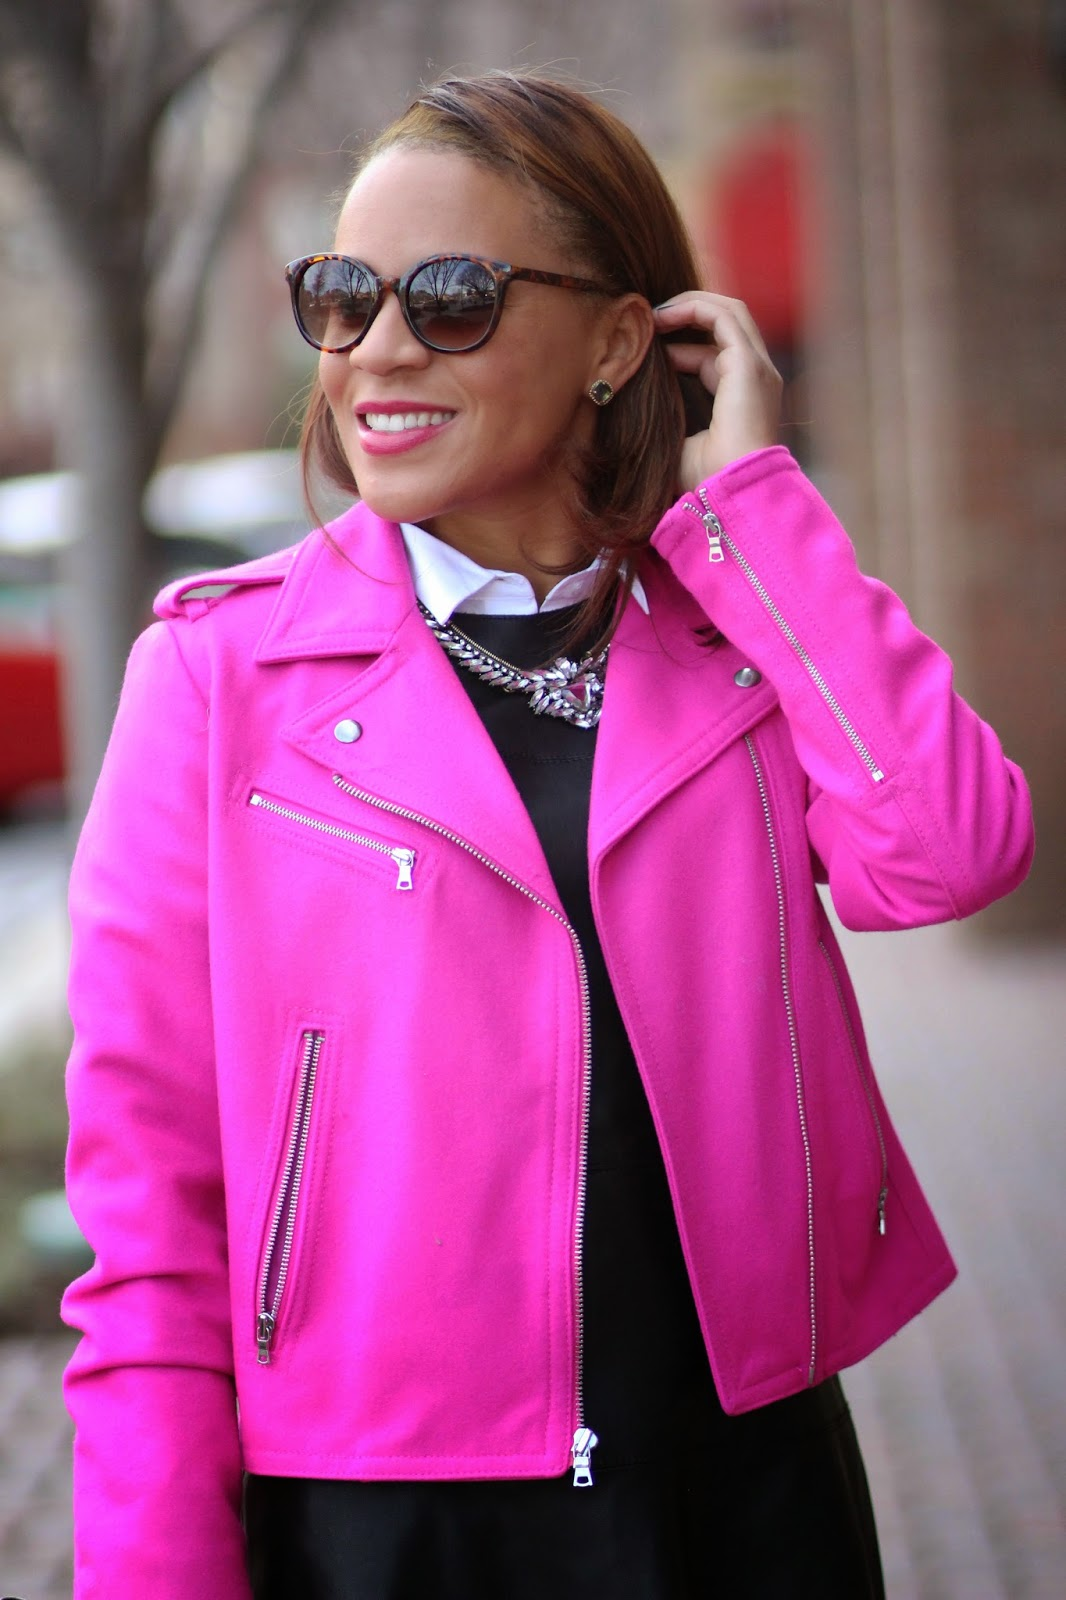 Nicole-to-the-Nines-Gap-pink-jacket